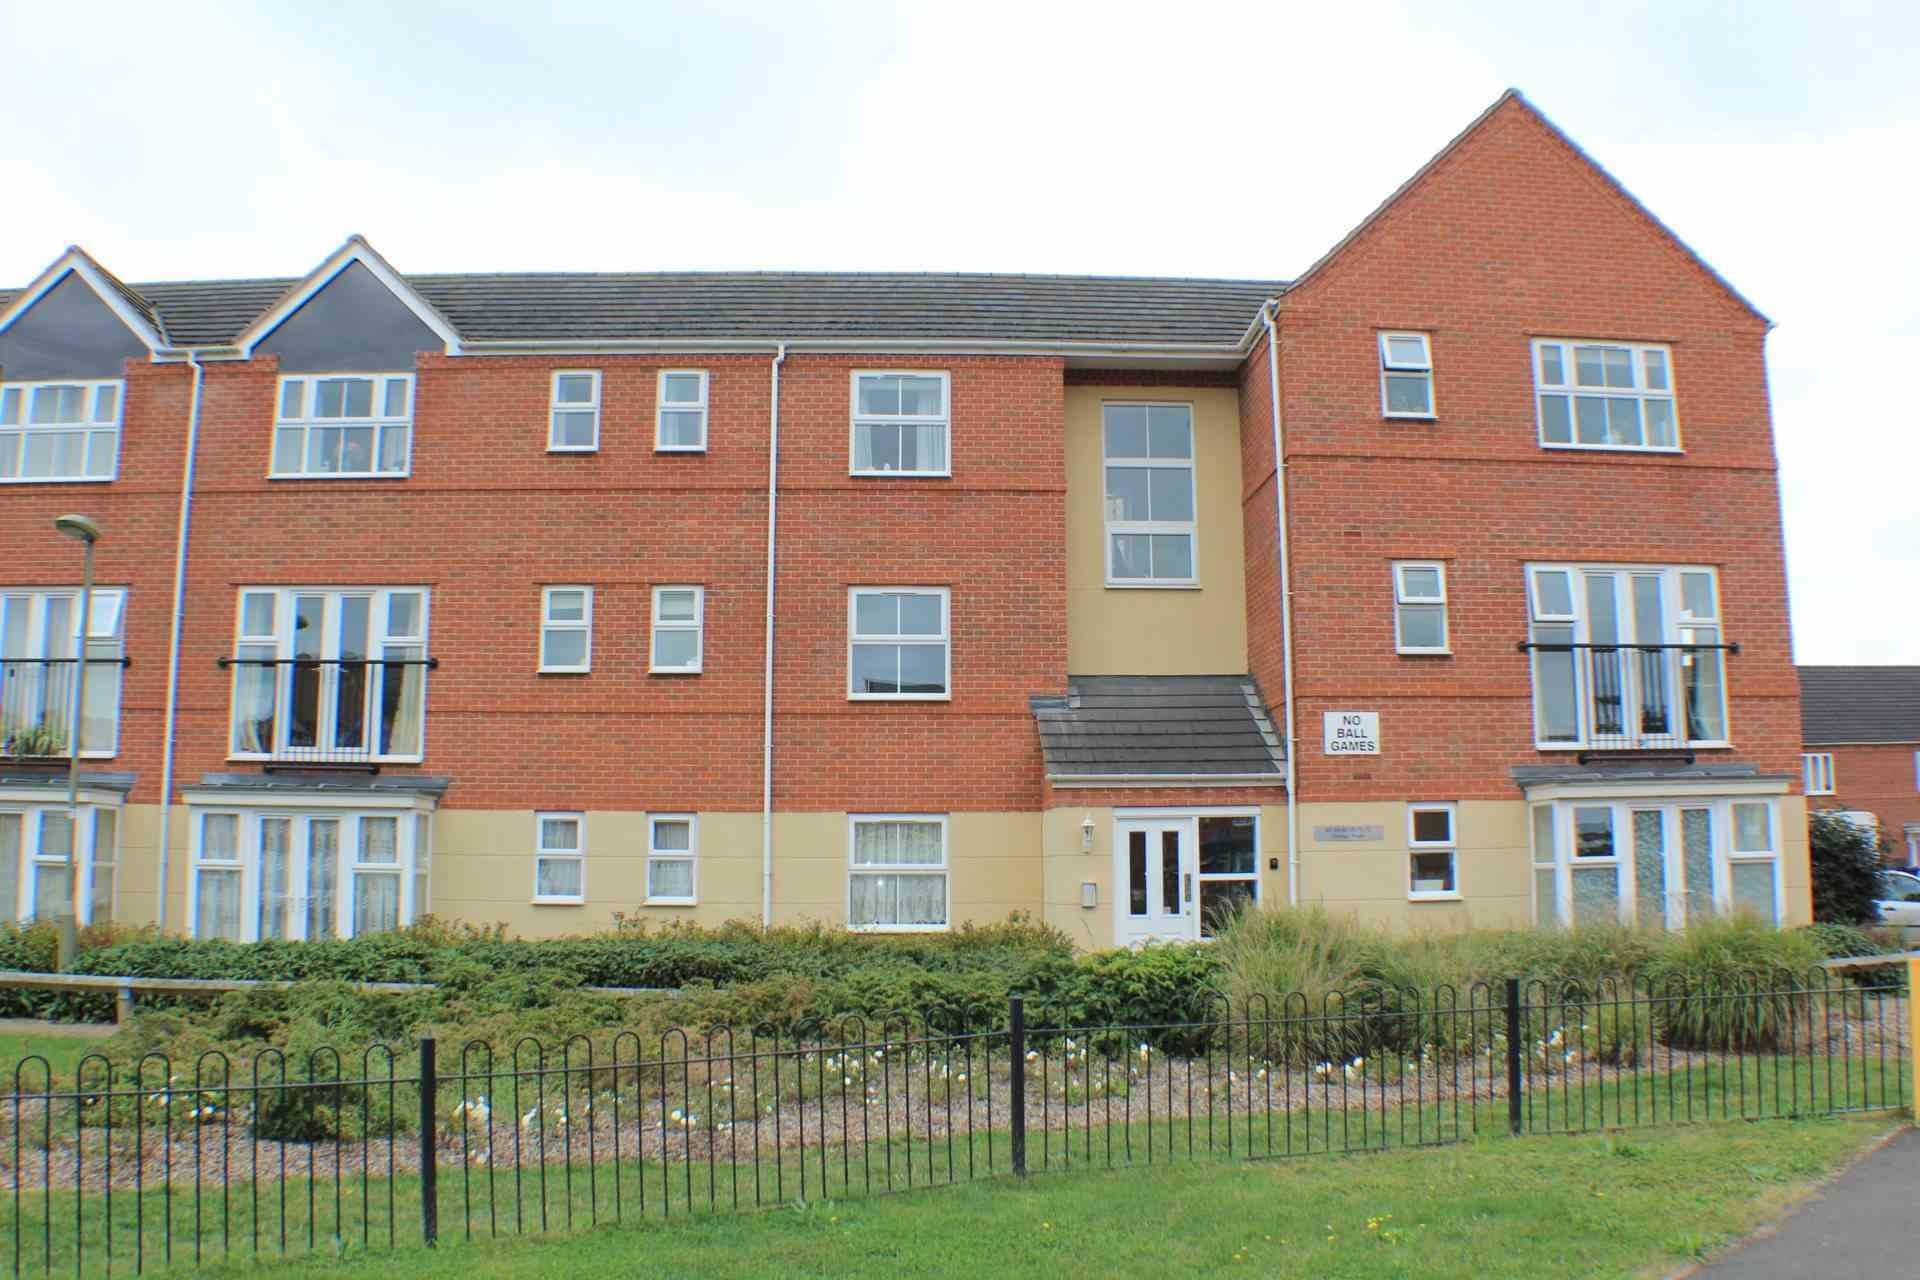 Best 2 Bedroom Flat To Rent Verney Road Banbury Ox16 4Qw With Pictures